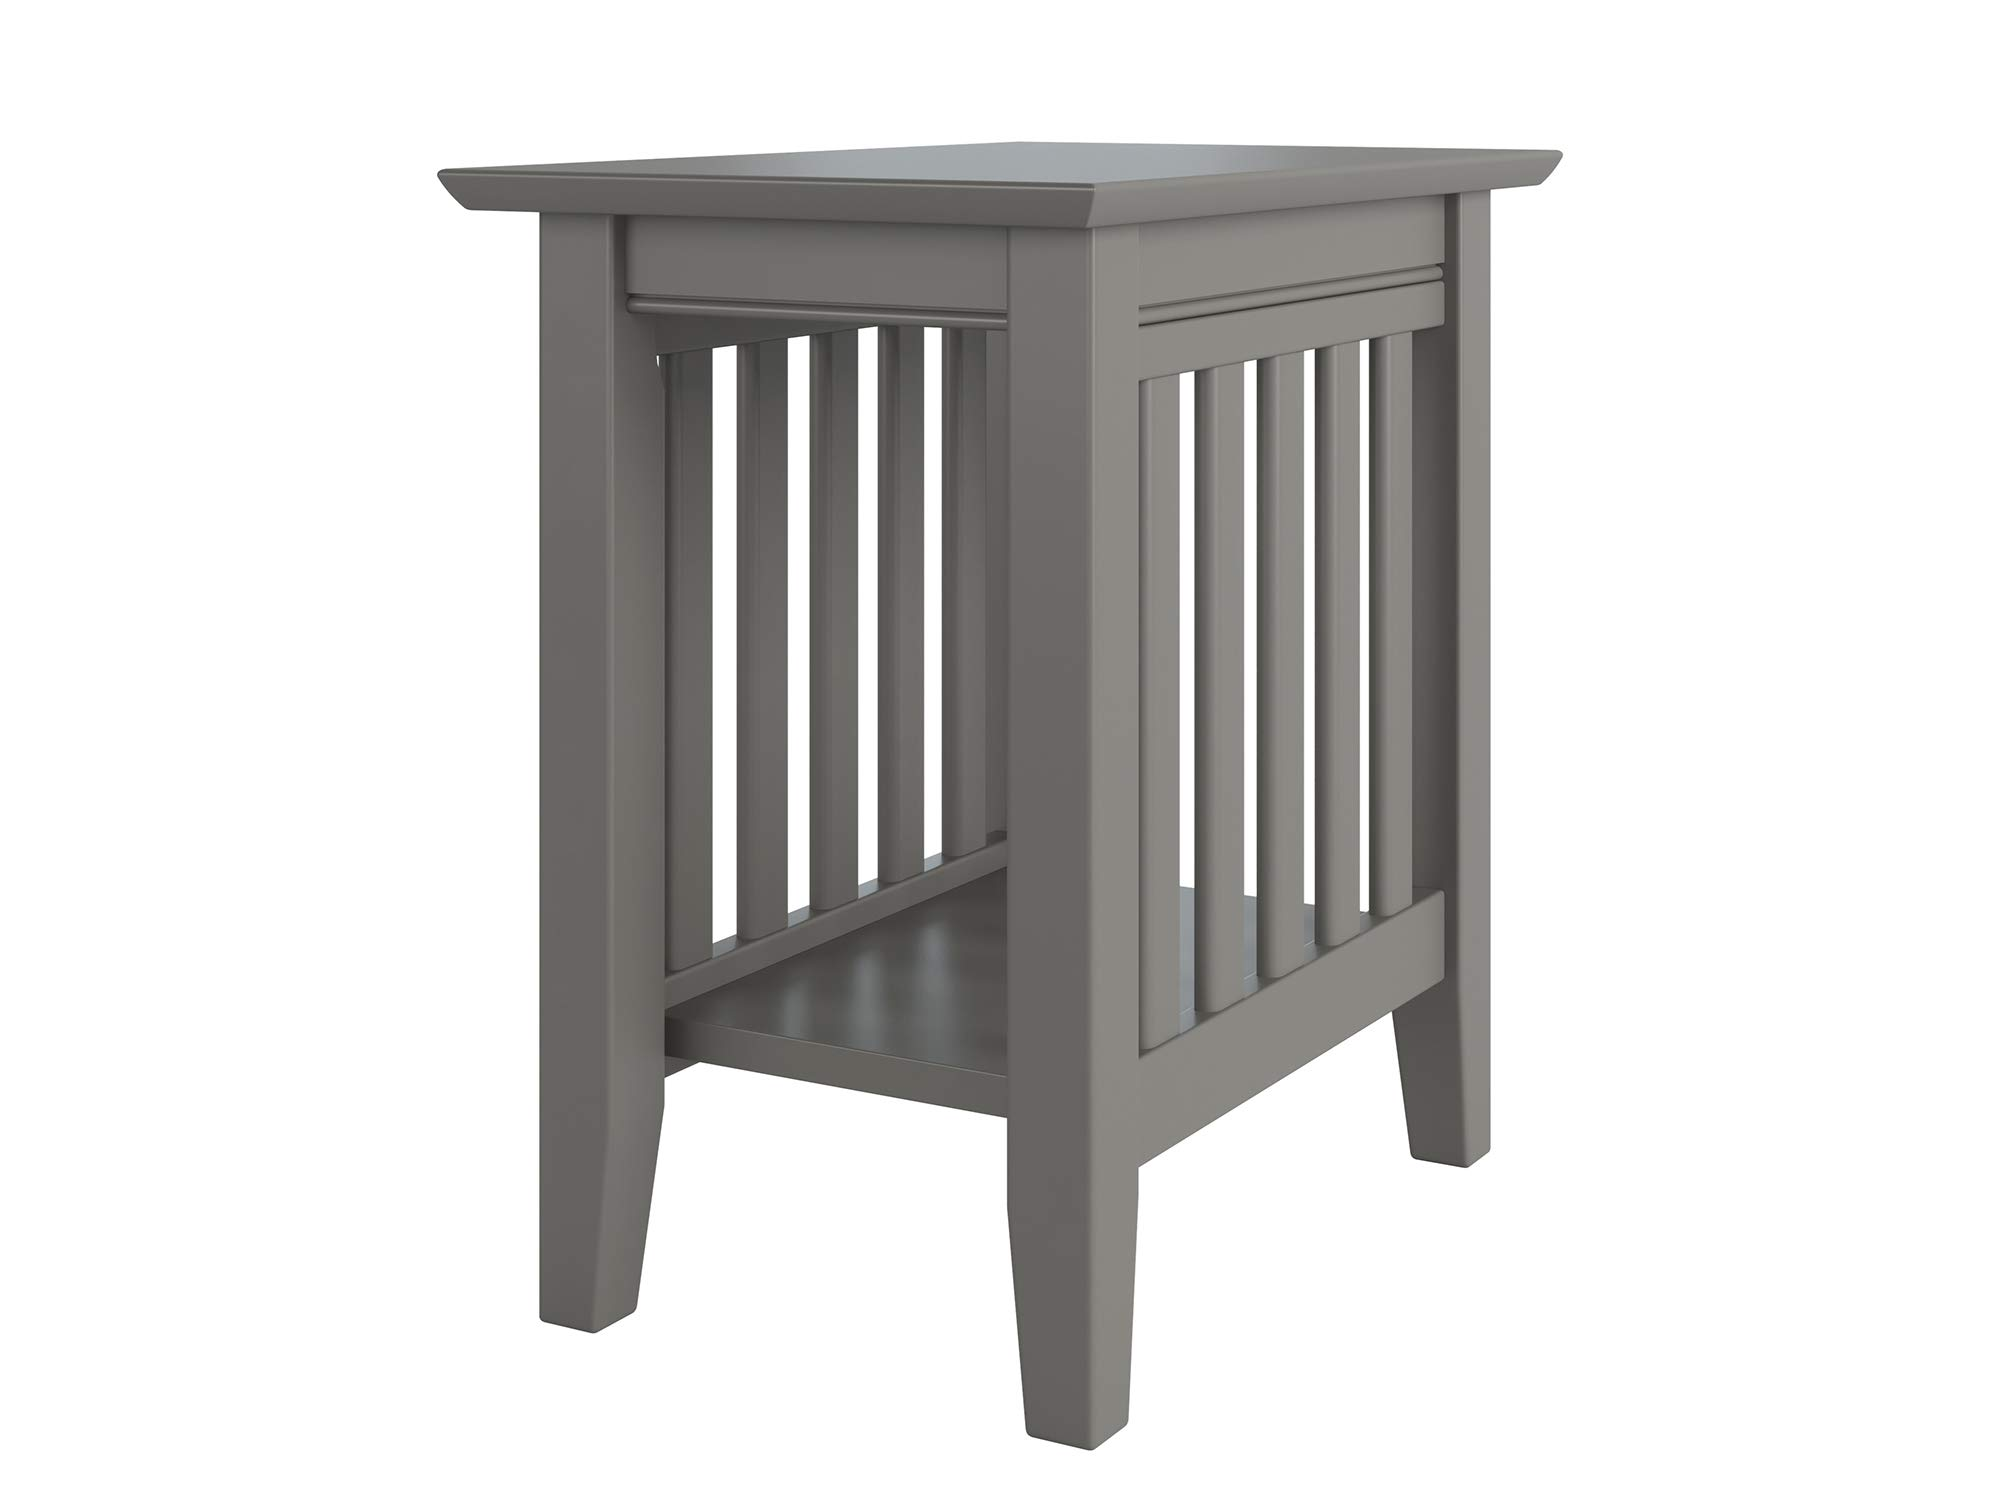 Atlantic Furniture AH13209 Mission Chair Side Table, Grey by Atlantic Furniture